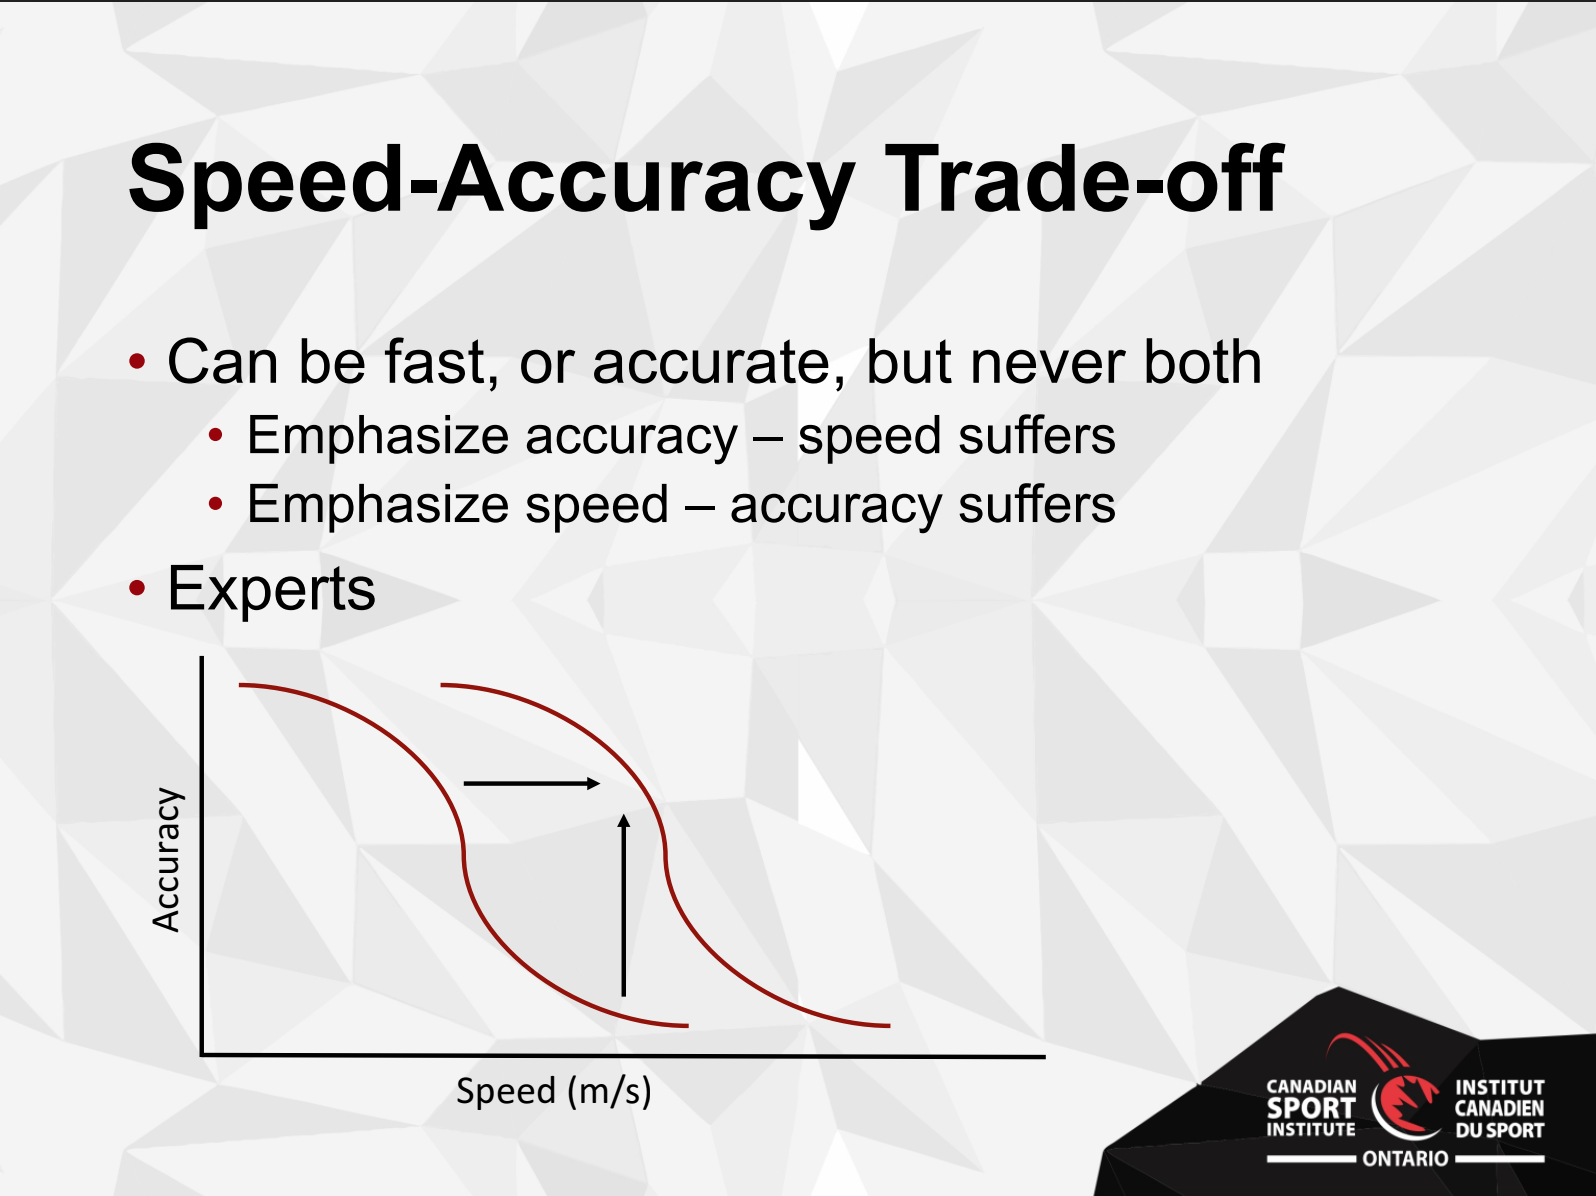 Image Of Speed-Accuracy Trade-Off